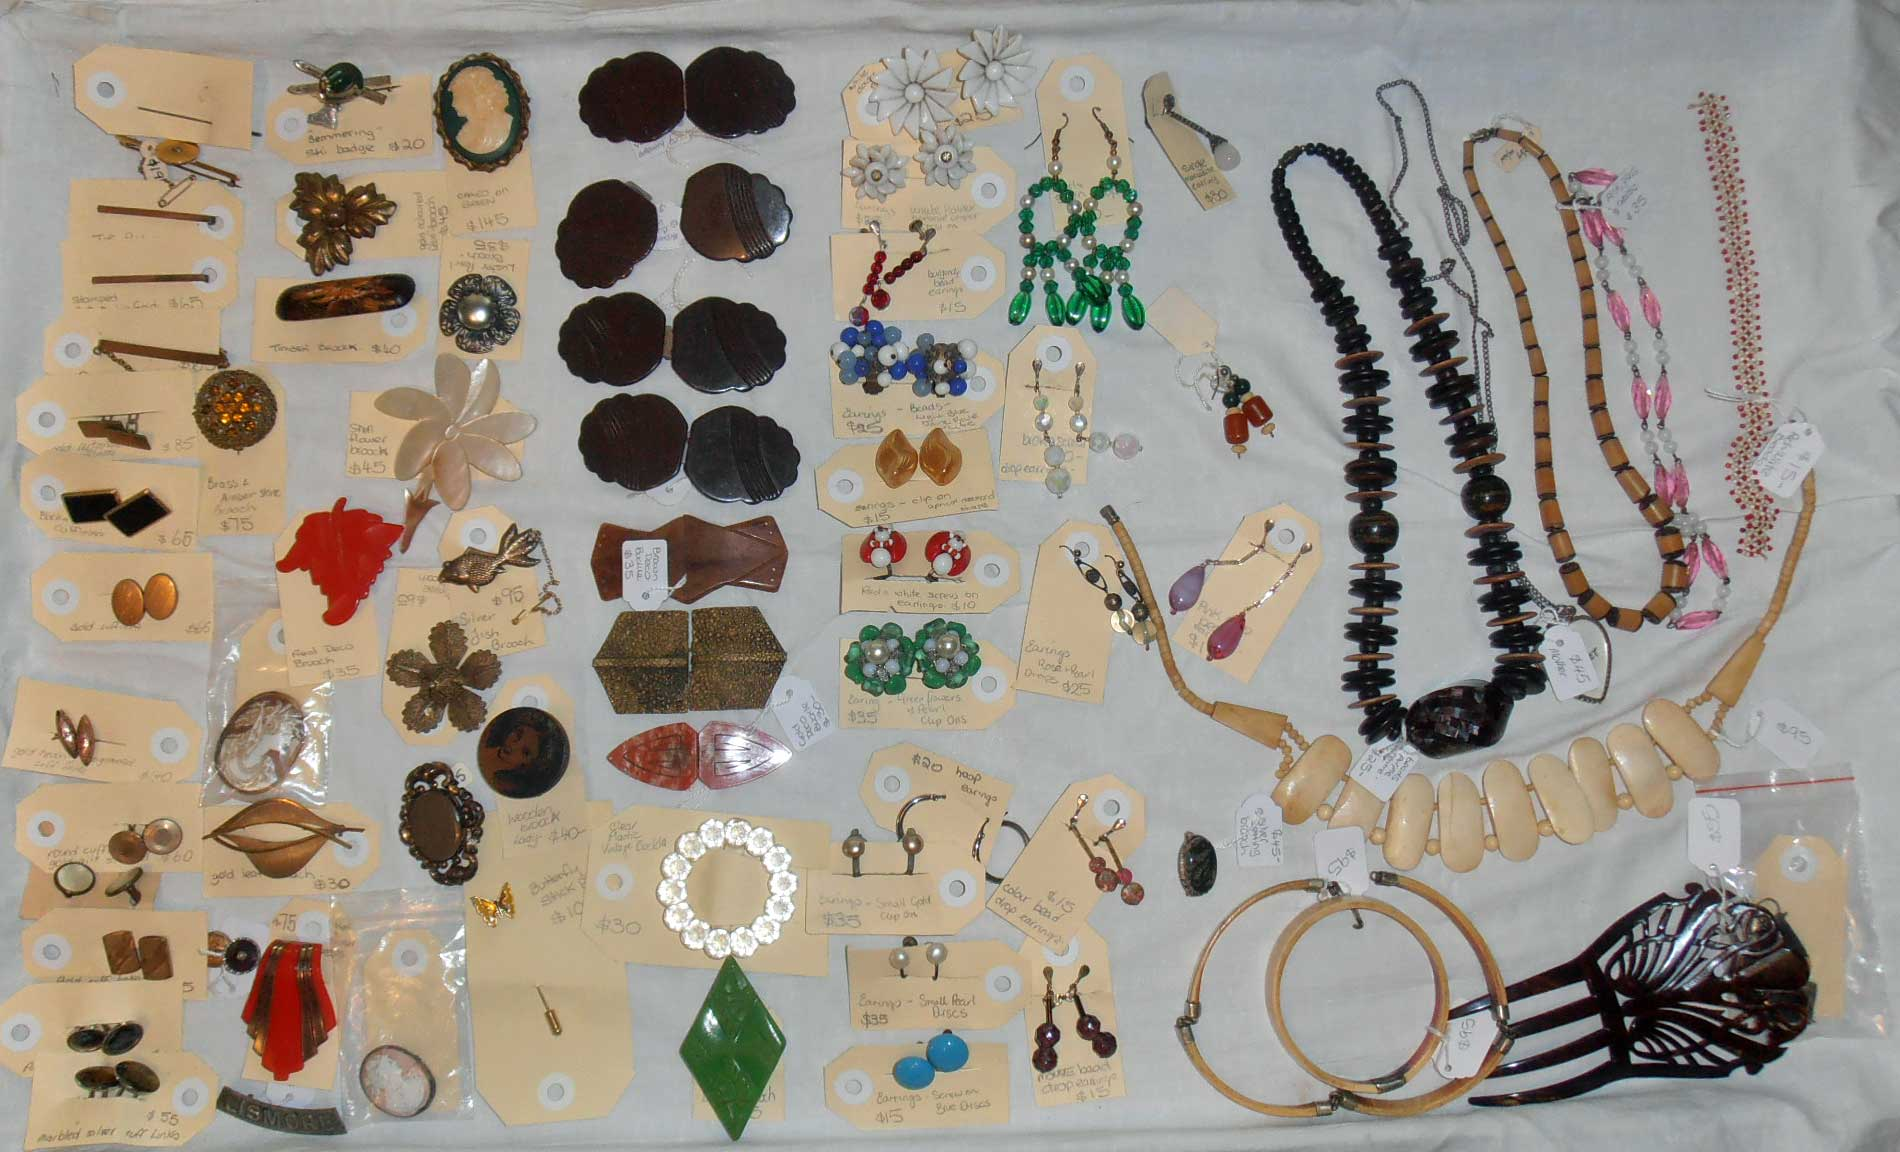 antique and vintage buttons, costume jewellery, Boxes and crates, For sale at Heaths Old Wares, Antiques, Collectables and industrial antiques 12 station St bangalow NSW phone 0266872222 open 7 days